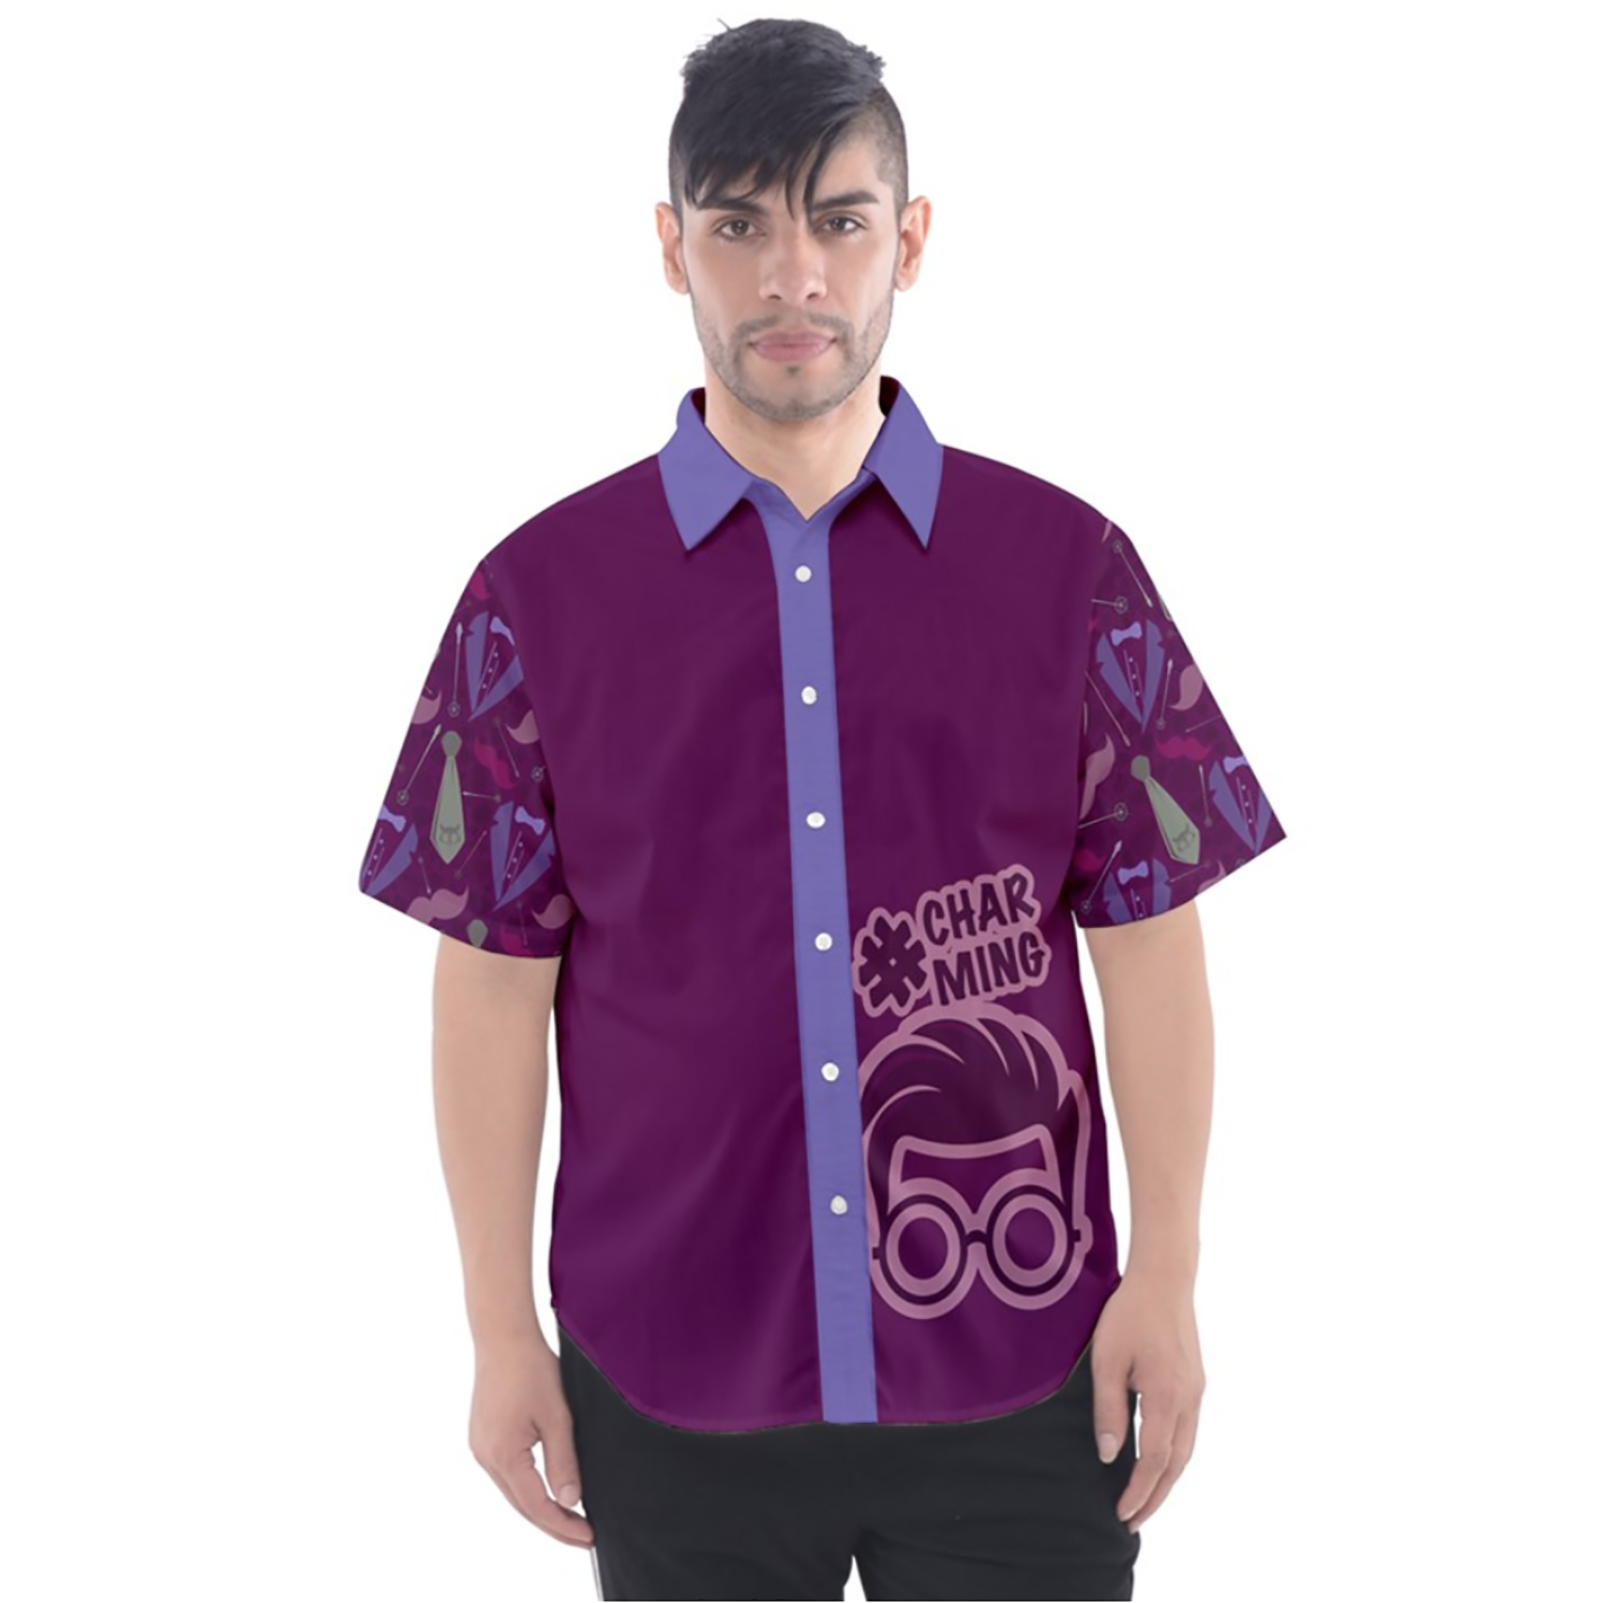 Charming Button Up Short Sleeve Shirt (Patterned)